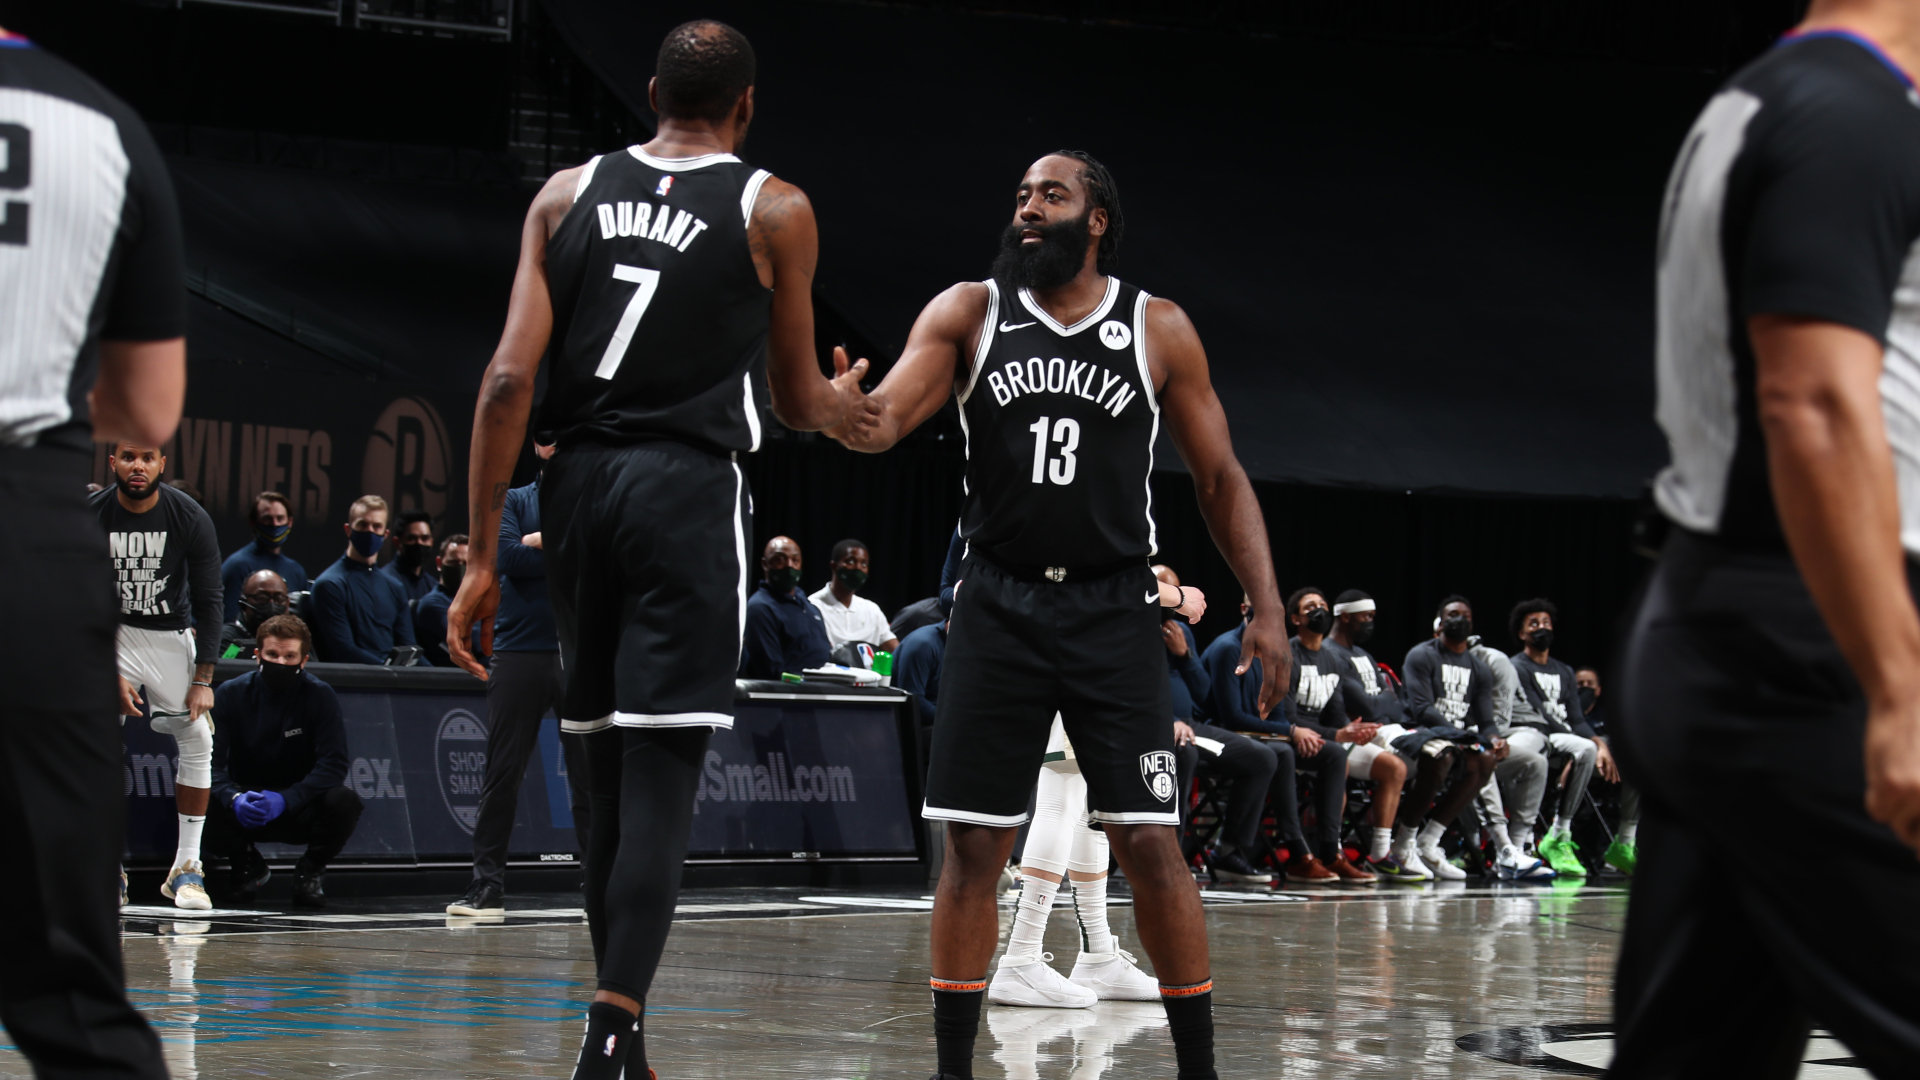 A late three-pointer from Kevin Durant gave the Nets a battling win over the Bucks, with James Harden also impressing for his new team.